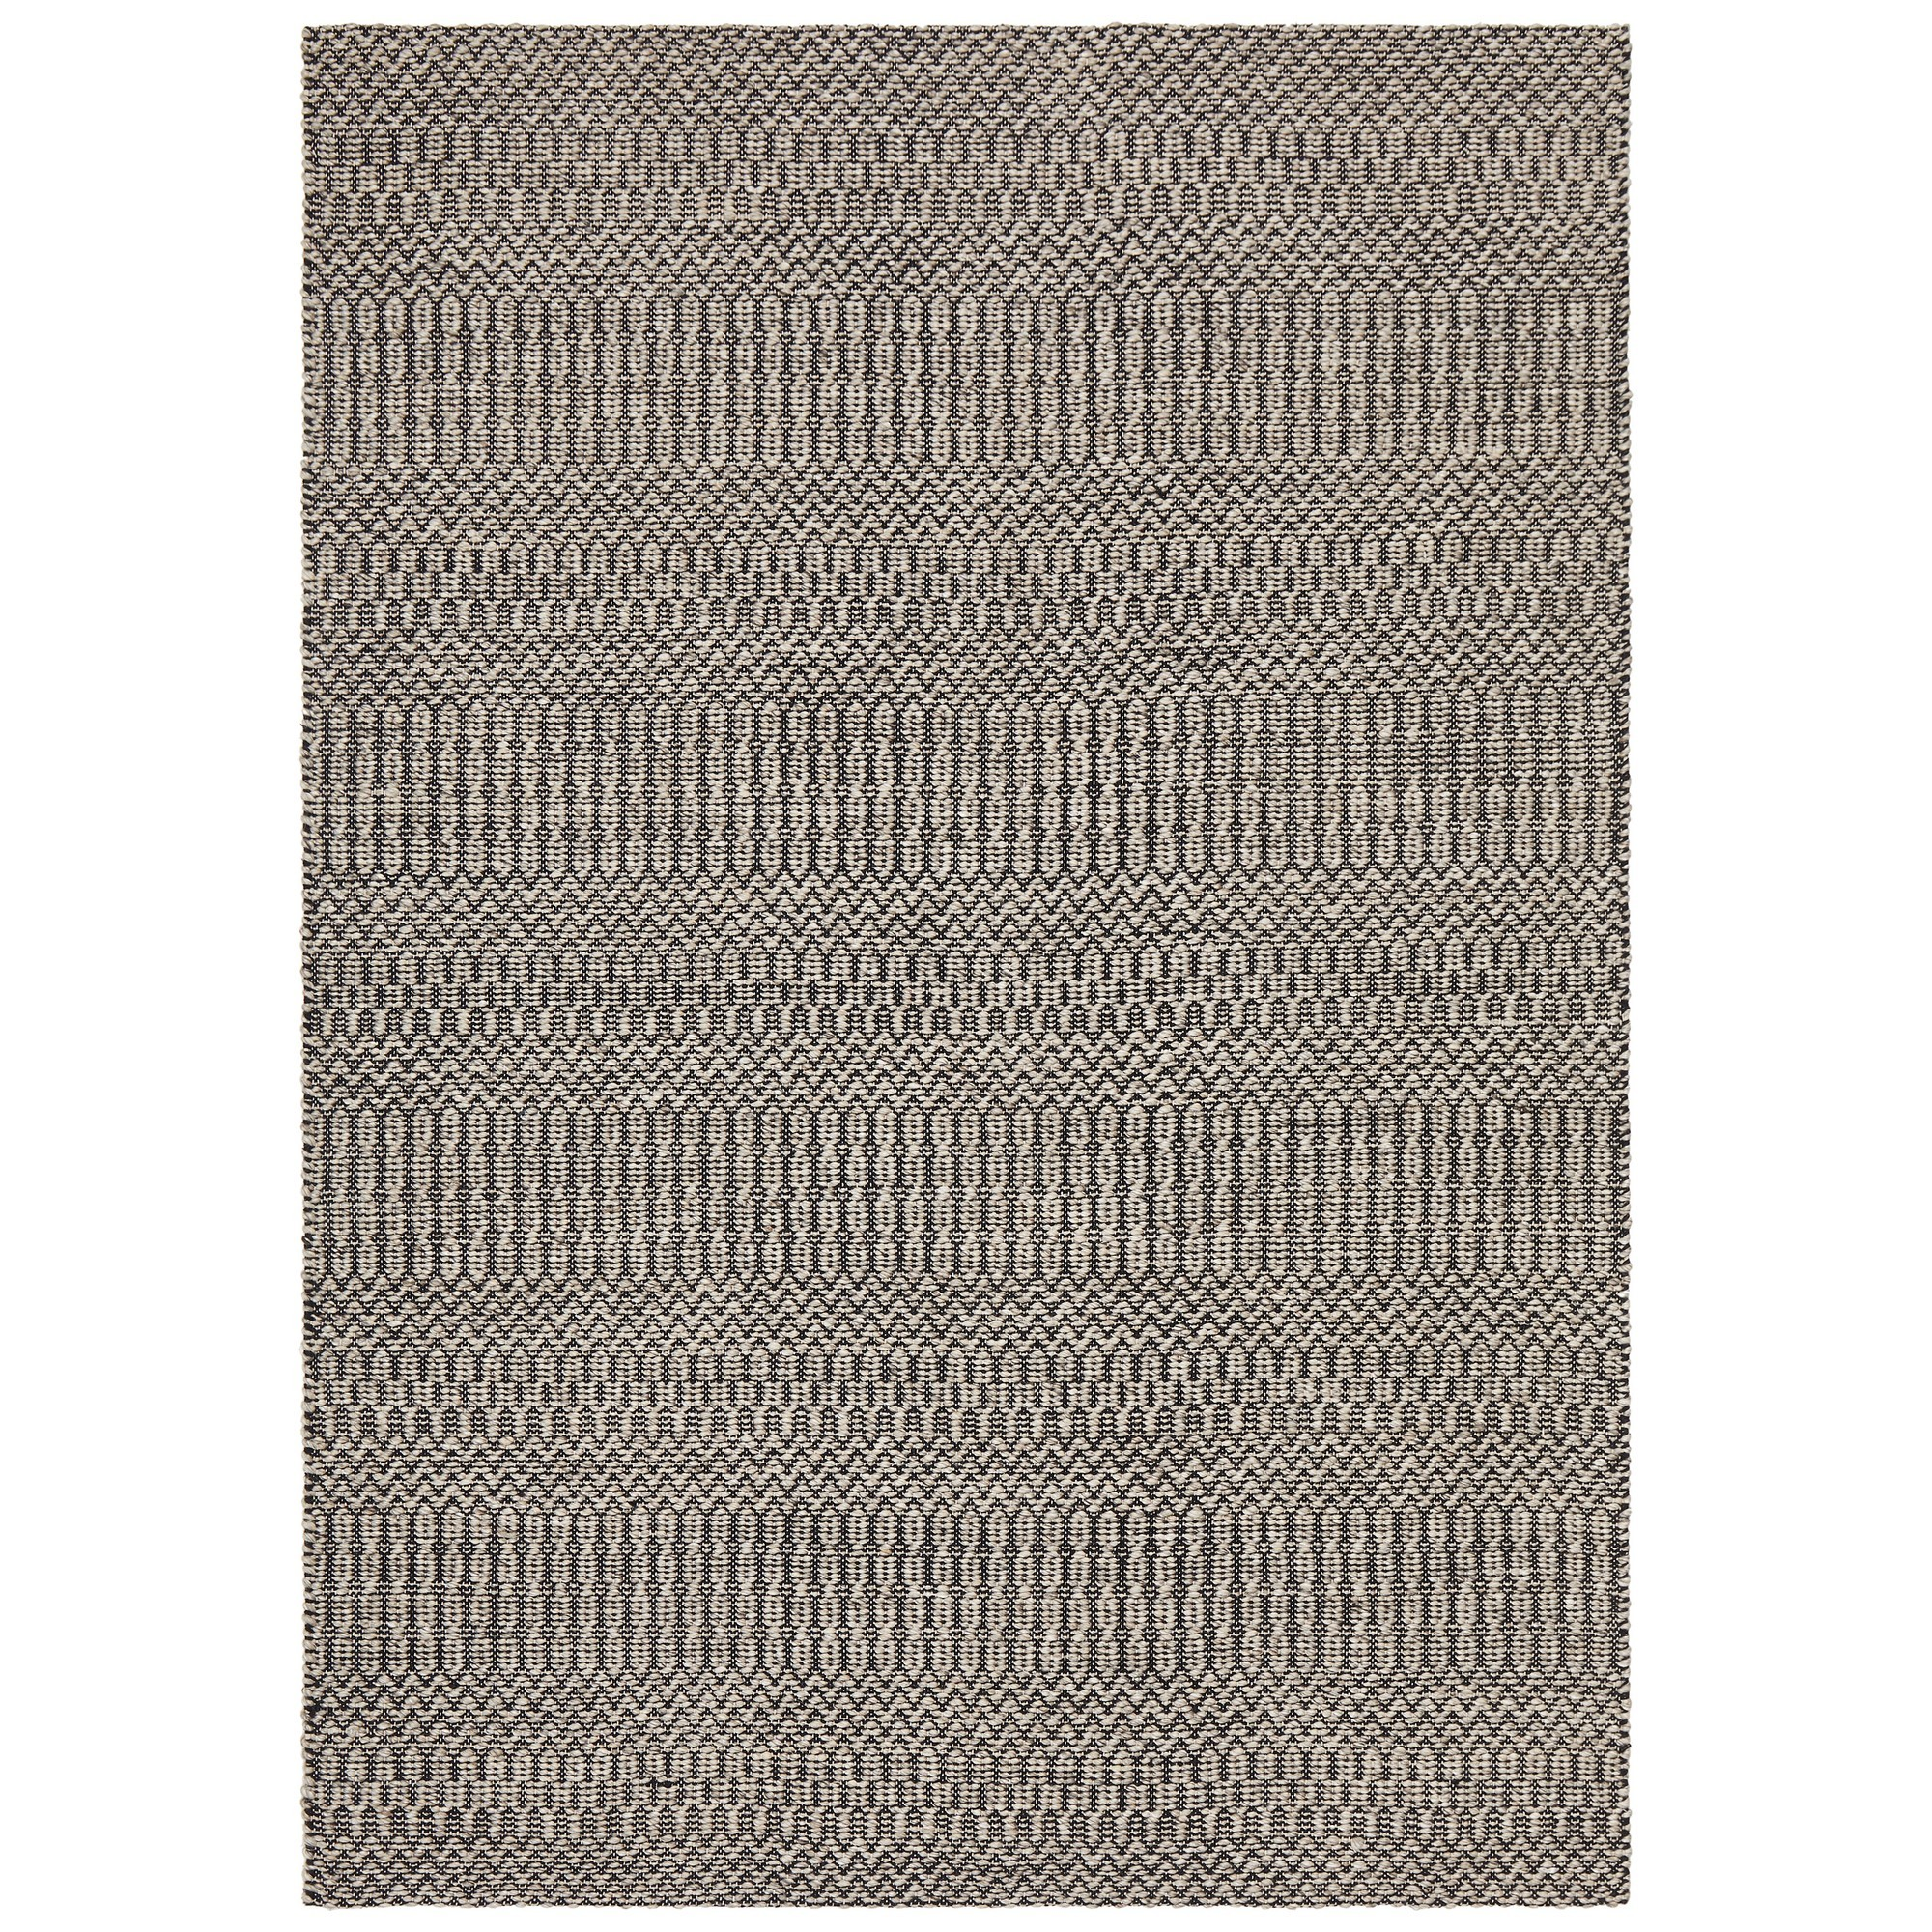 Rhythm Tune Hand Loomed Wool & Cotton Rug, 230x320cm, Grey